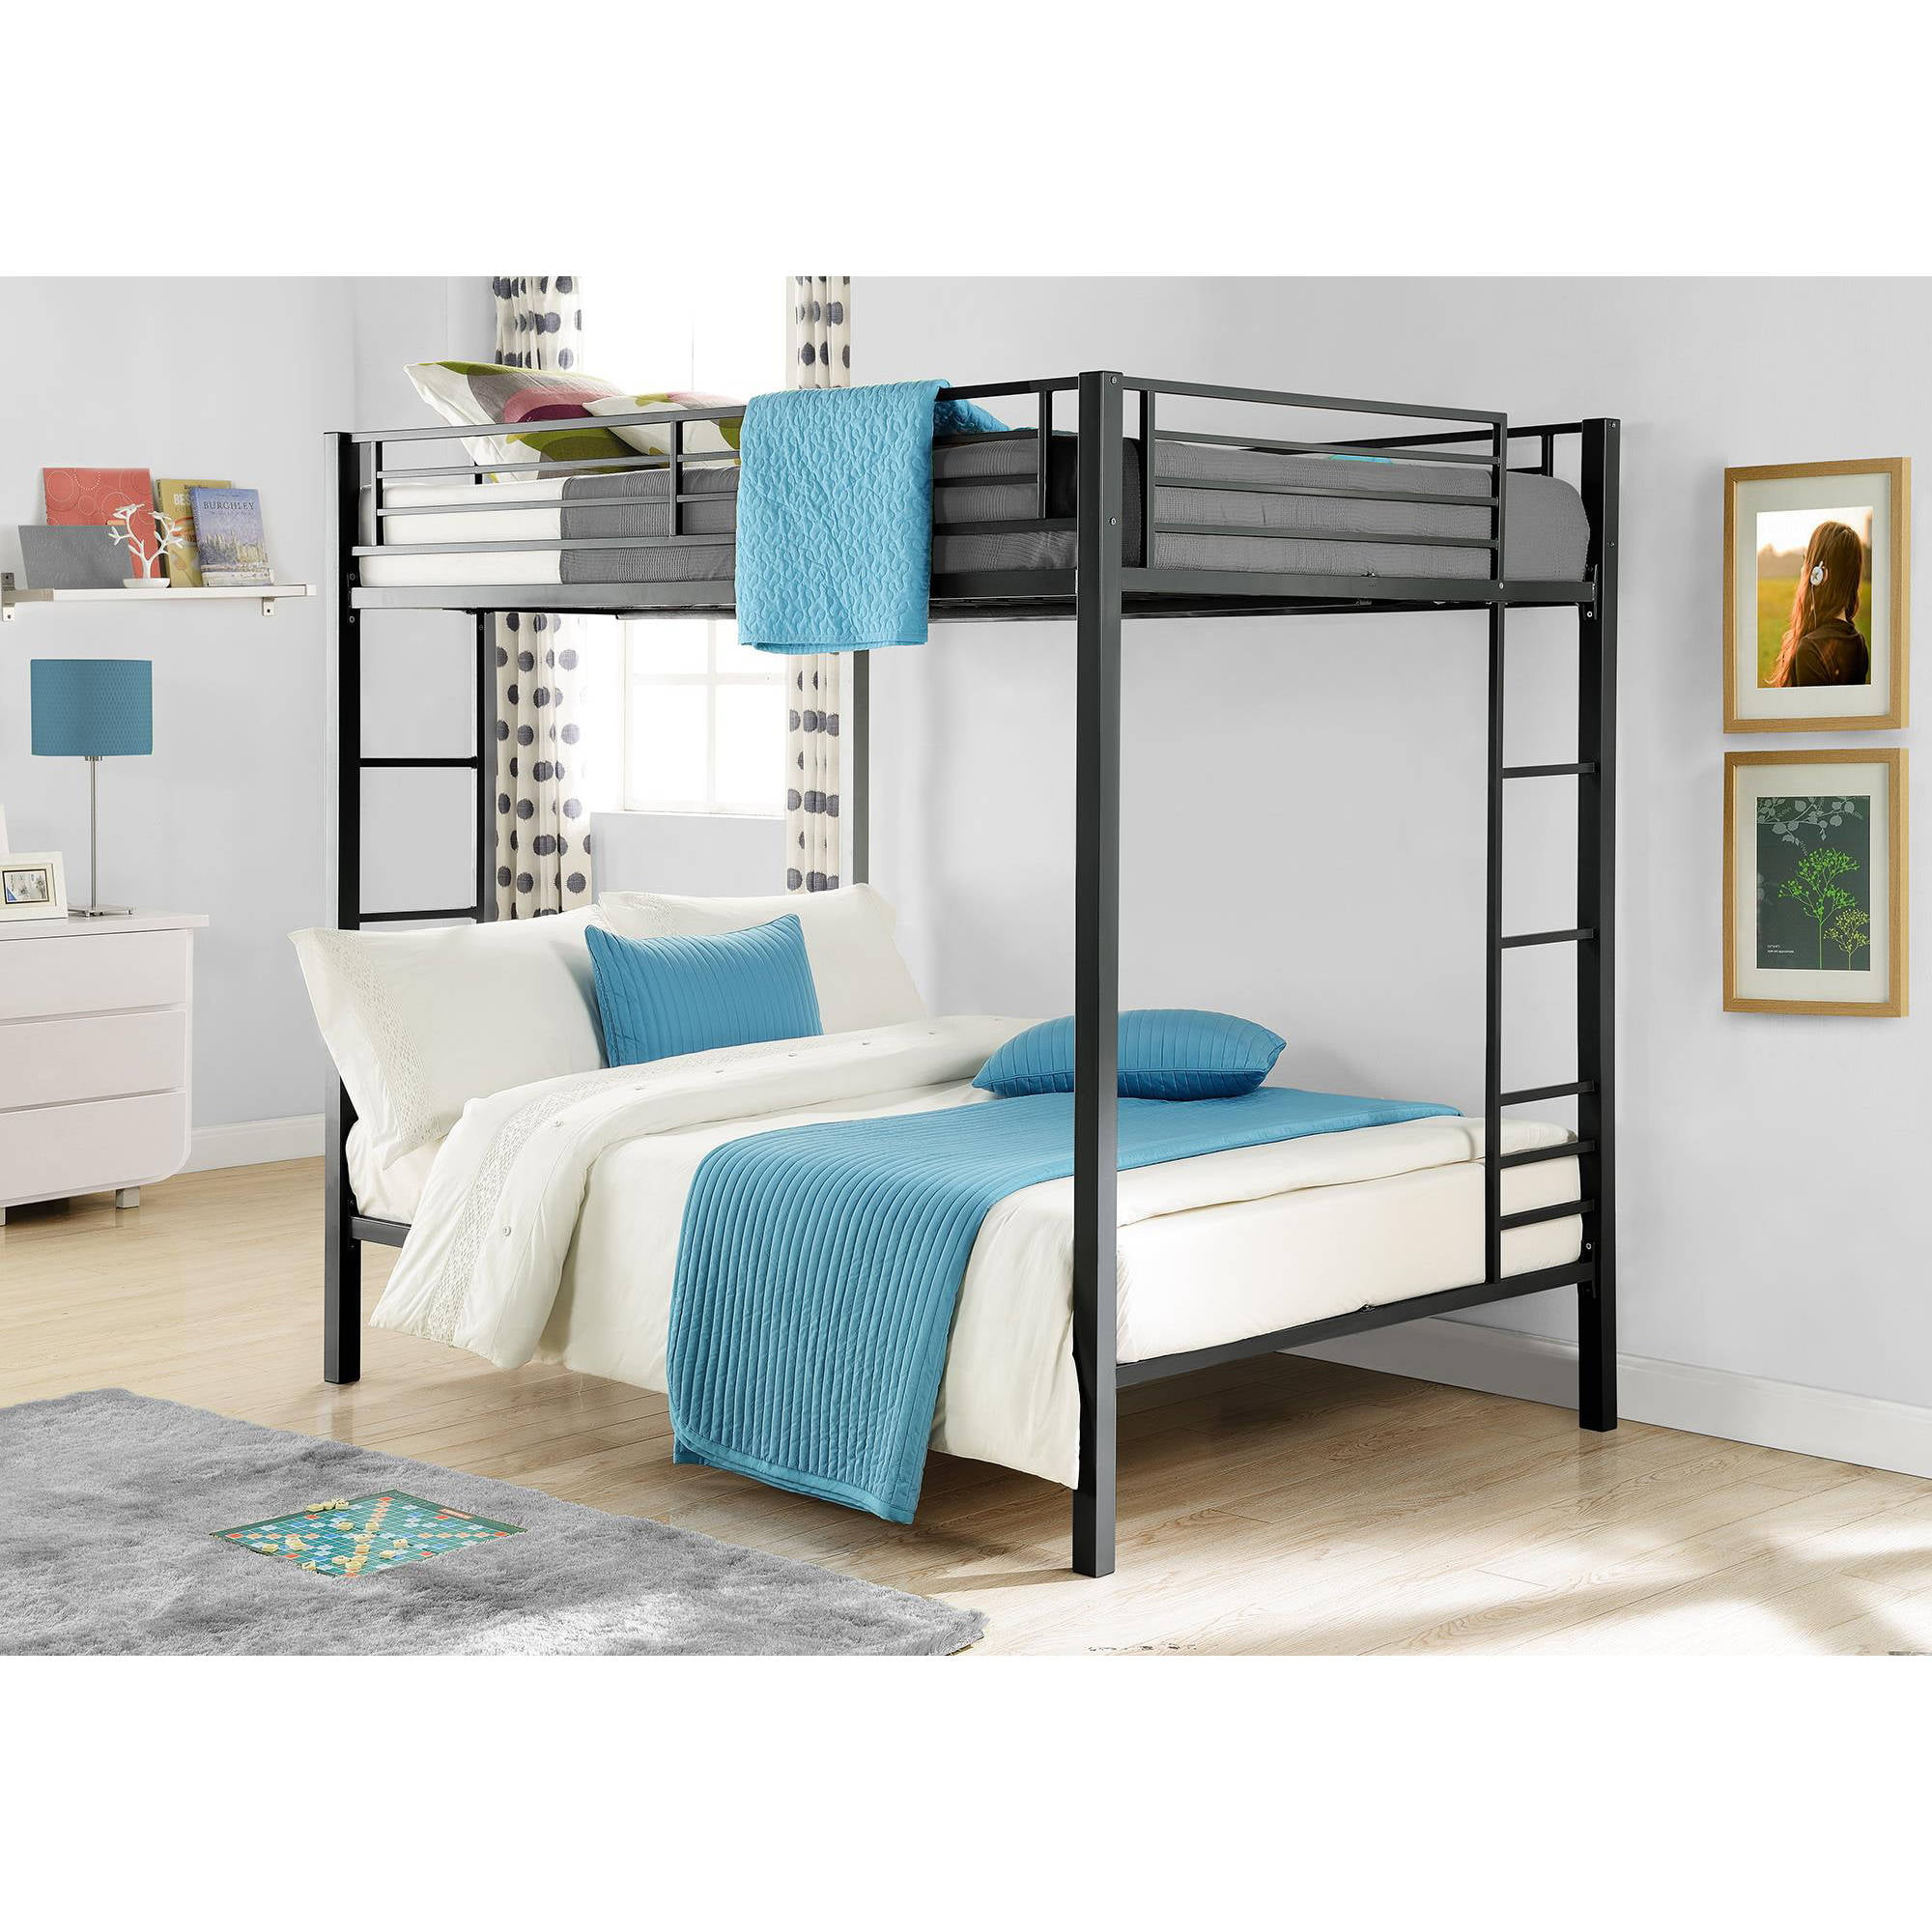 Bunk beds for adults full - Bunk Beds For Adults Full 25